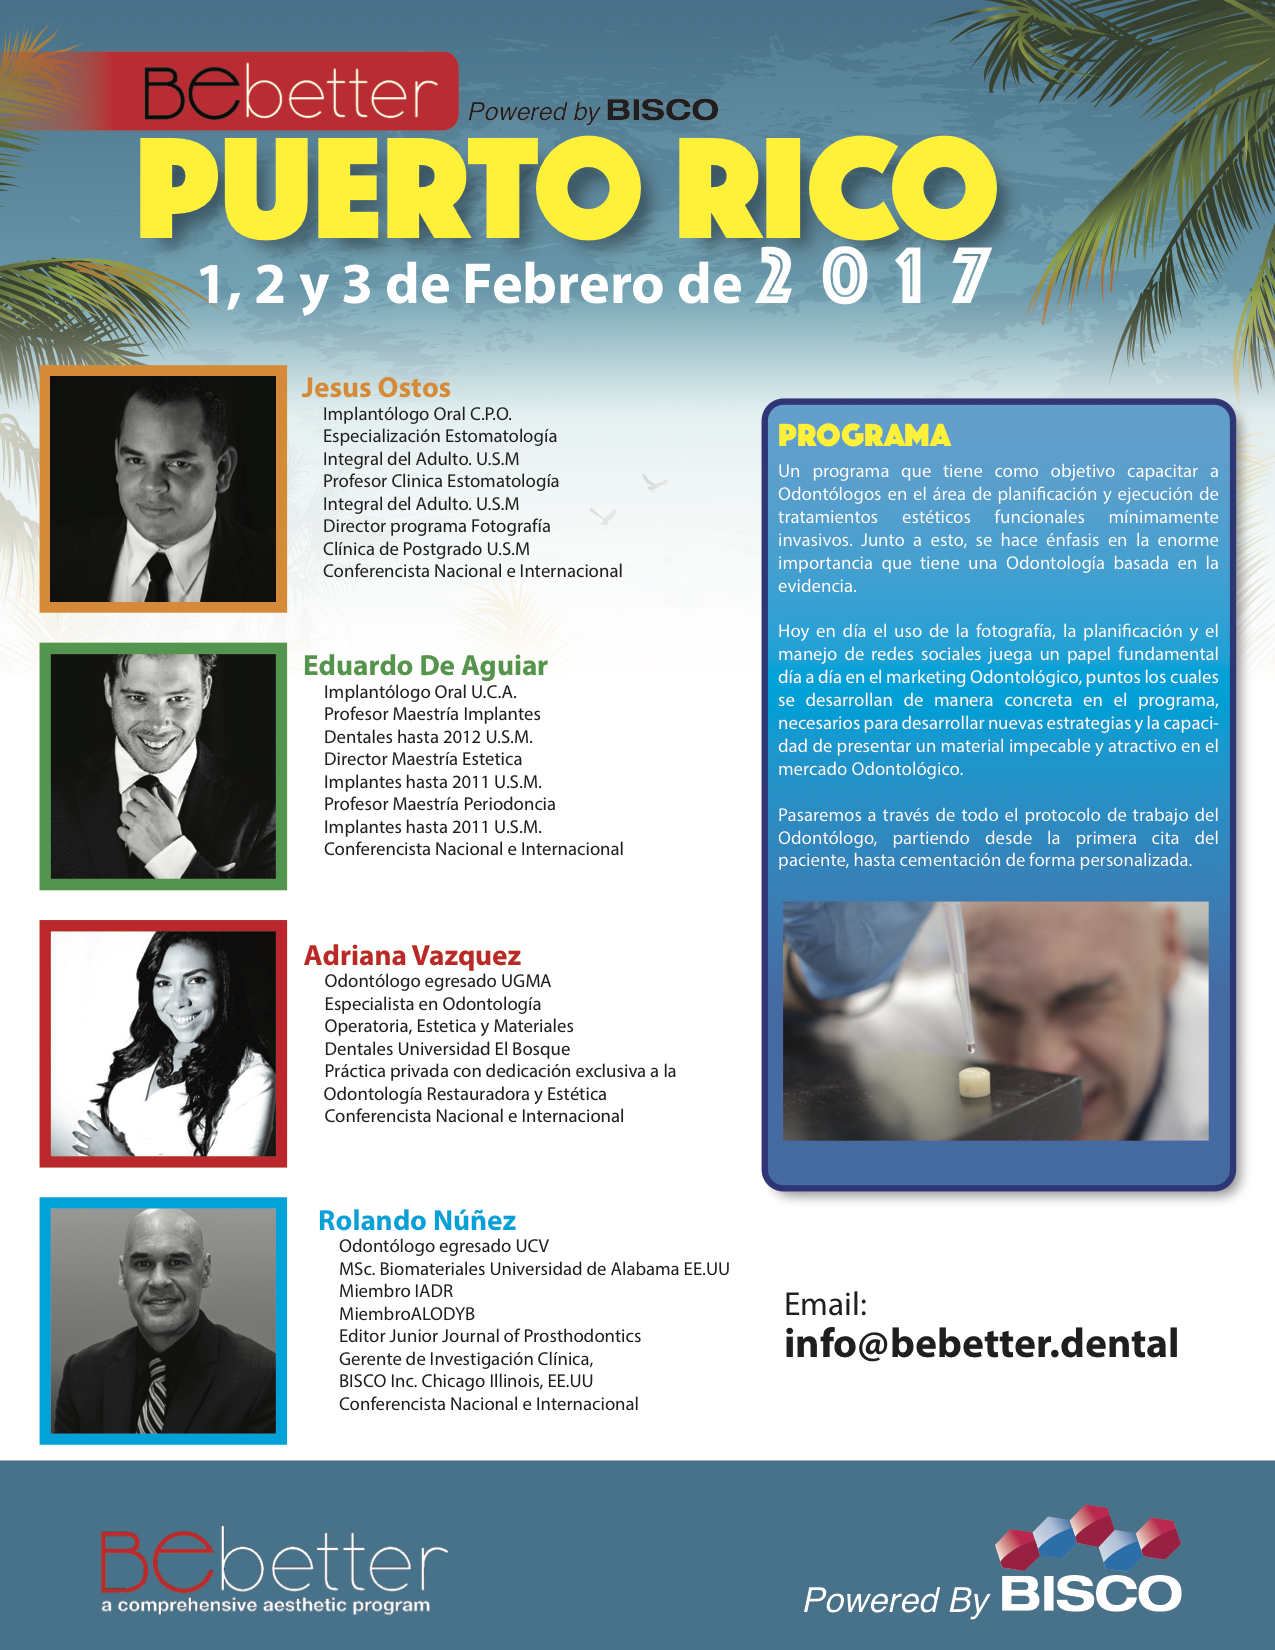 BE Better Power by BISCO PUERTO RICO